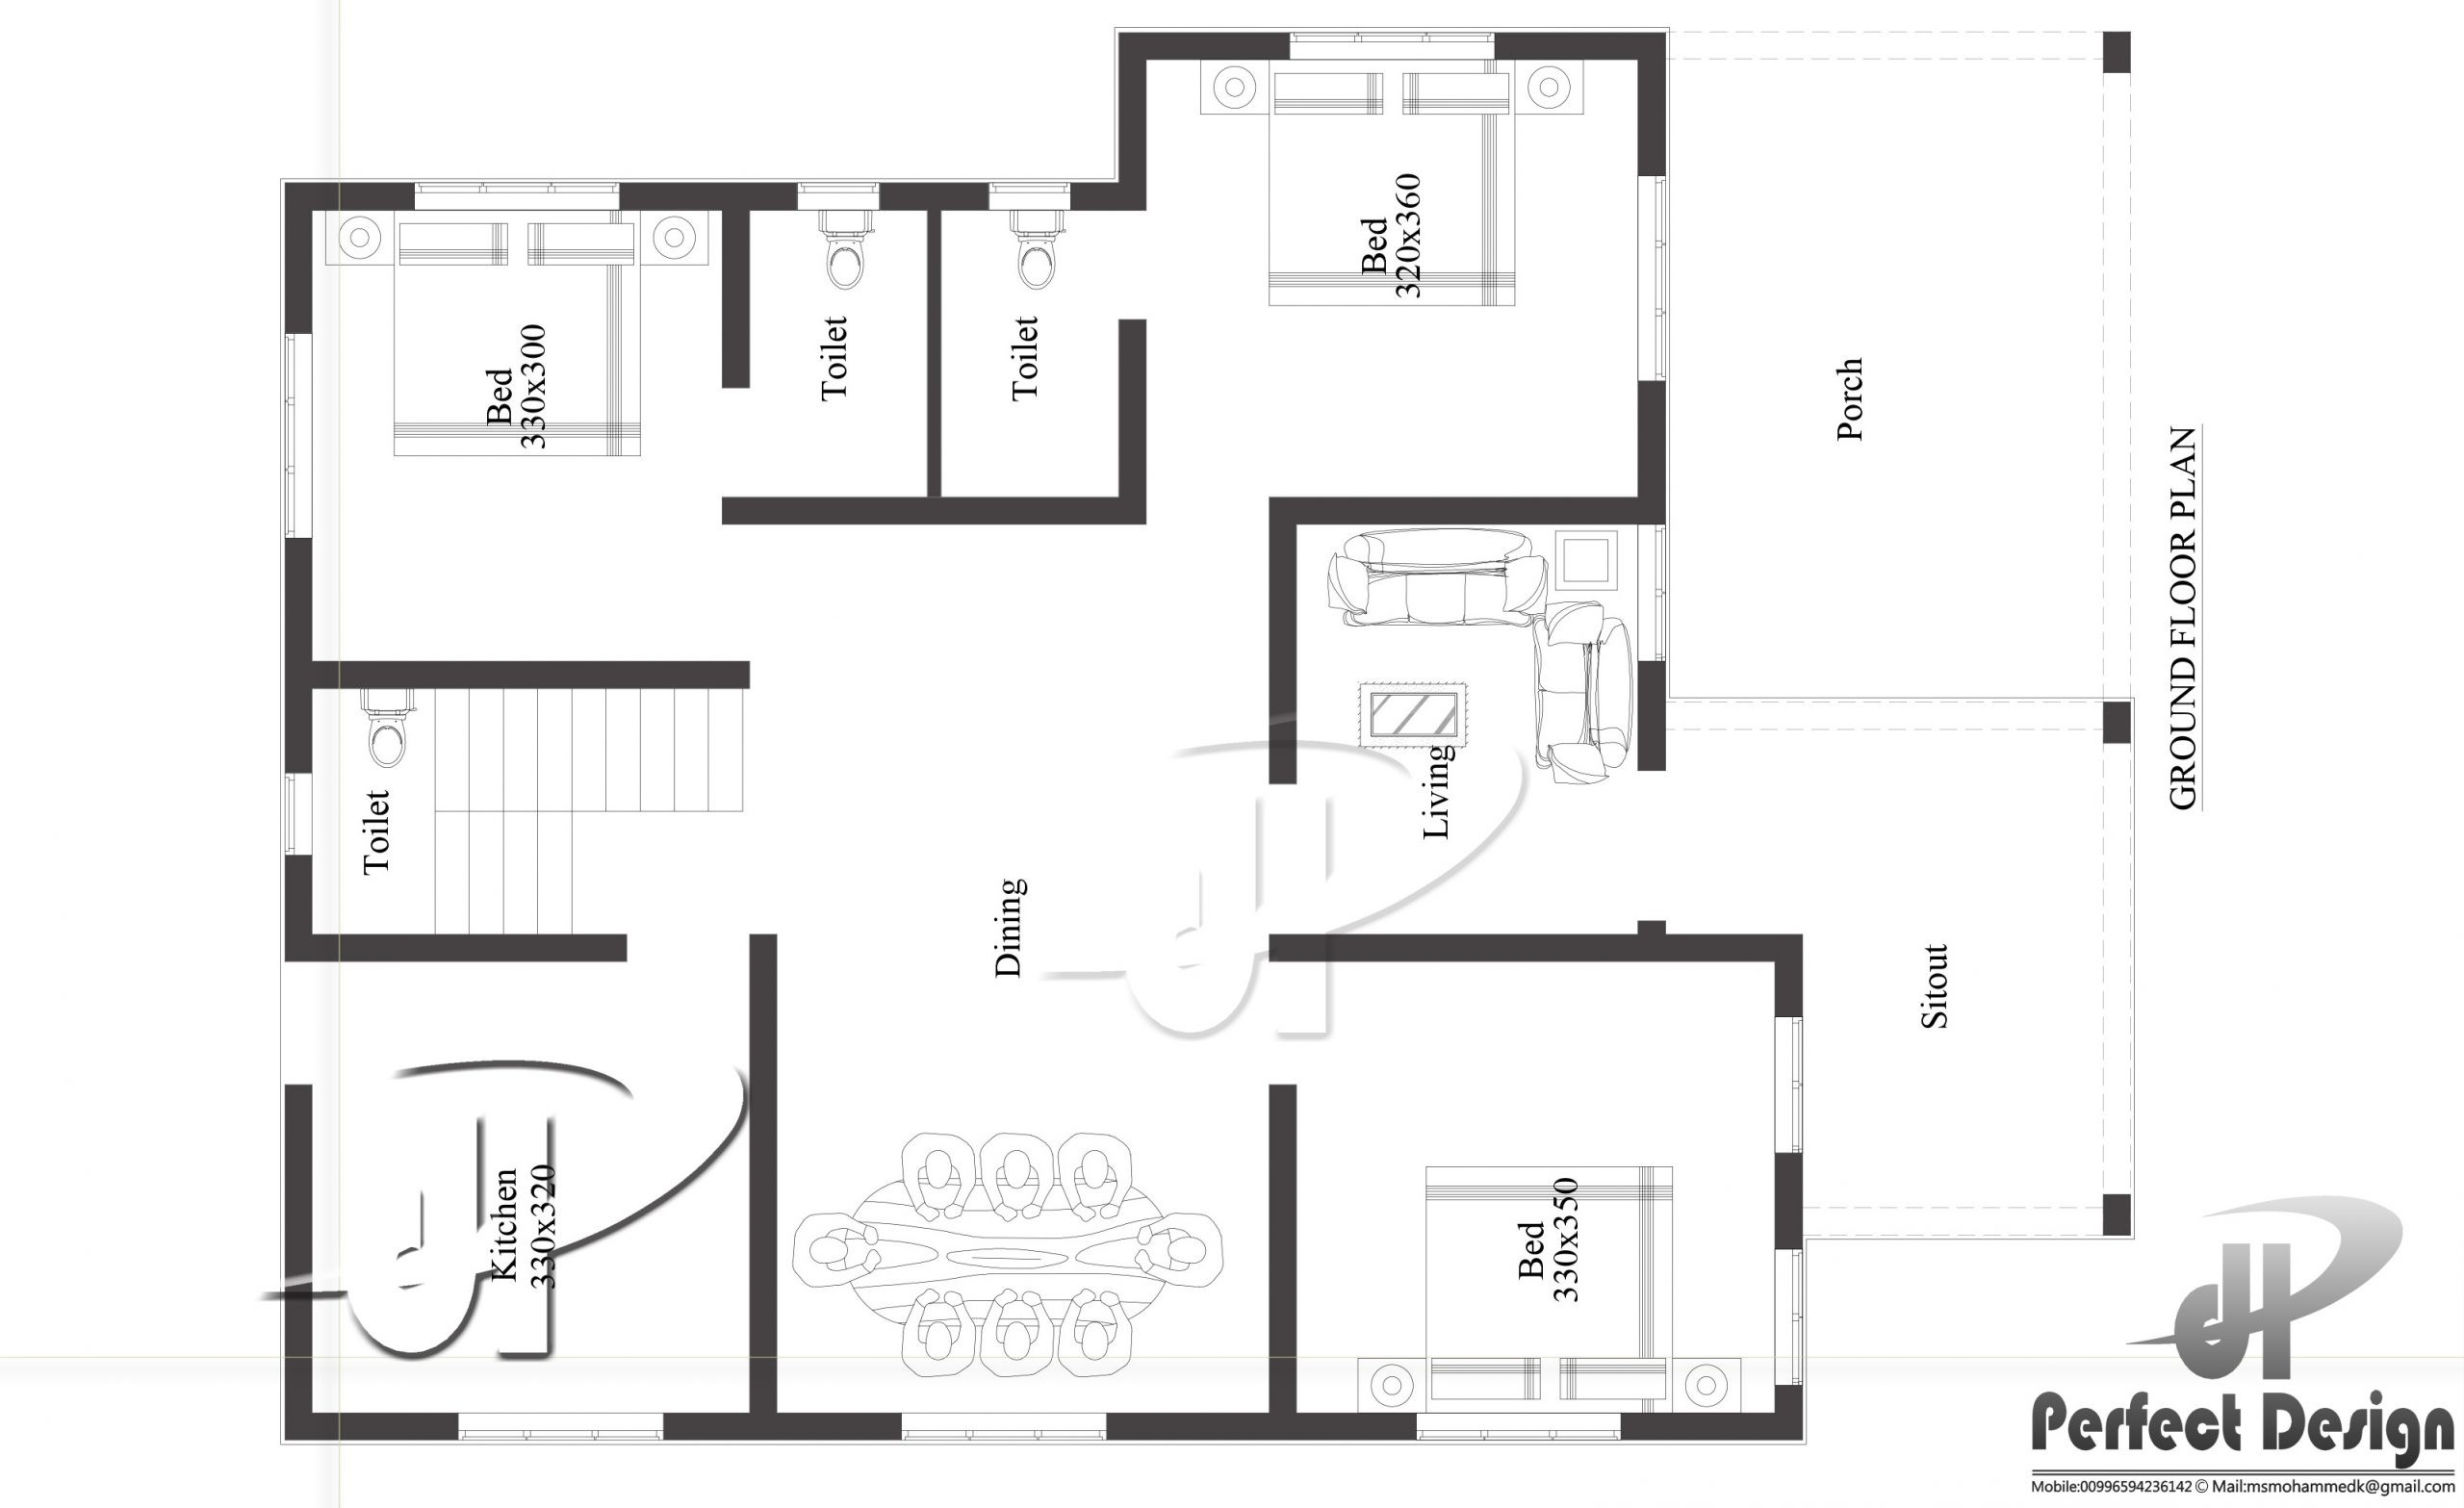 1129 Sq Ft 3BHK Contemporary Style Home and Free Plan